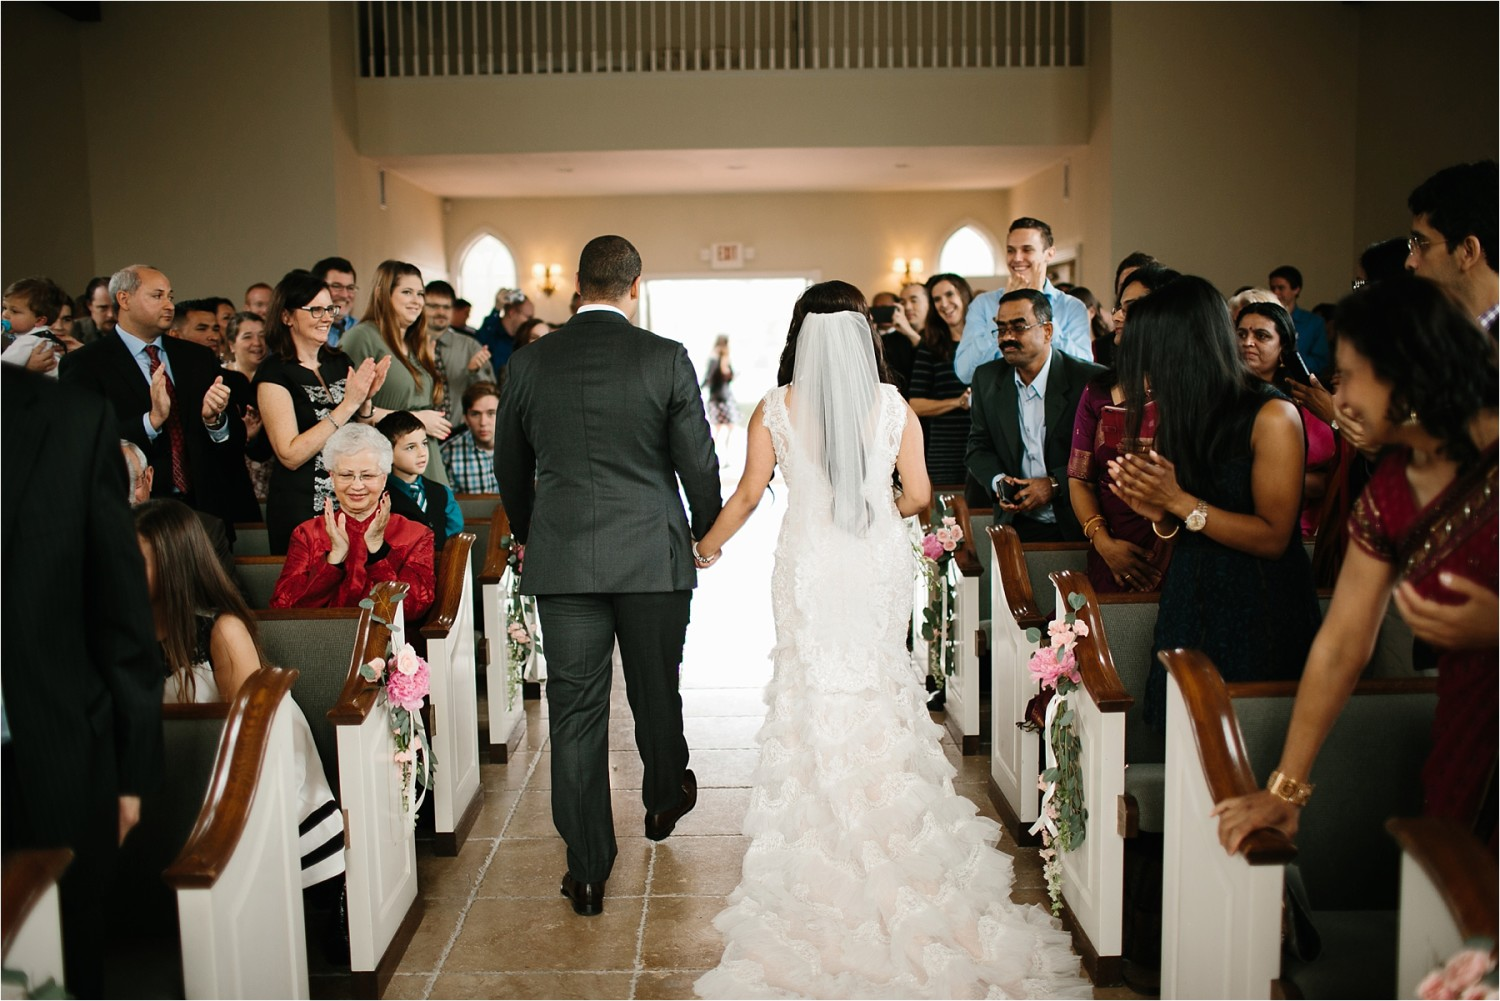 Jeanpaul + Ann __ a colorful wedding at Ashton Gardens in Houston TX by North Texas Wedding Photographer Rachel Meagan Photography _ 31